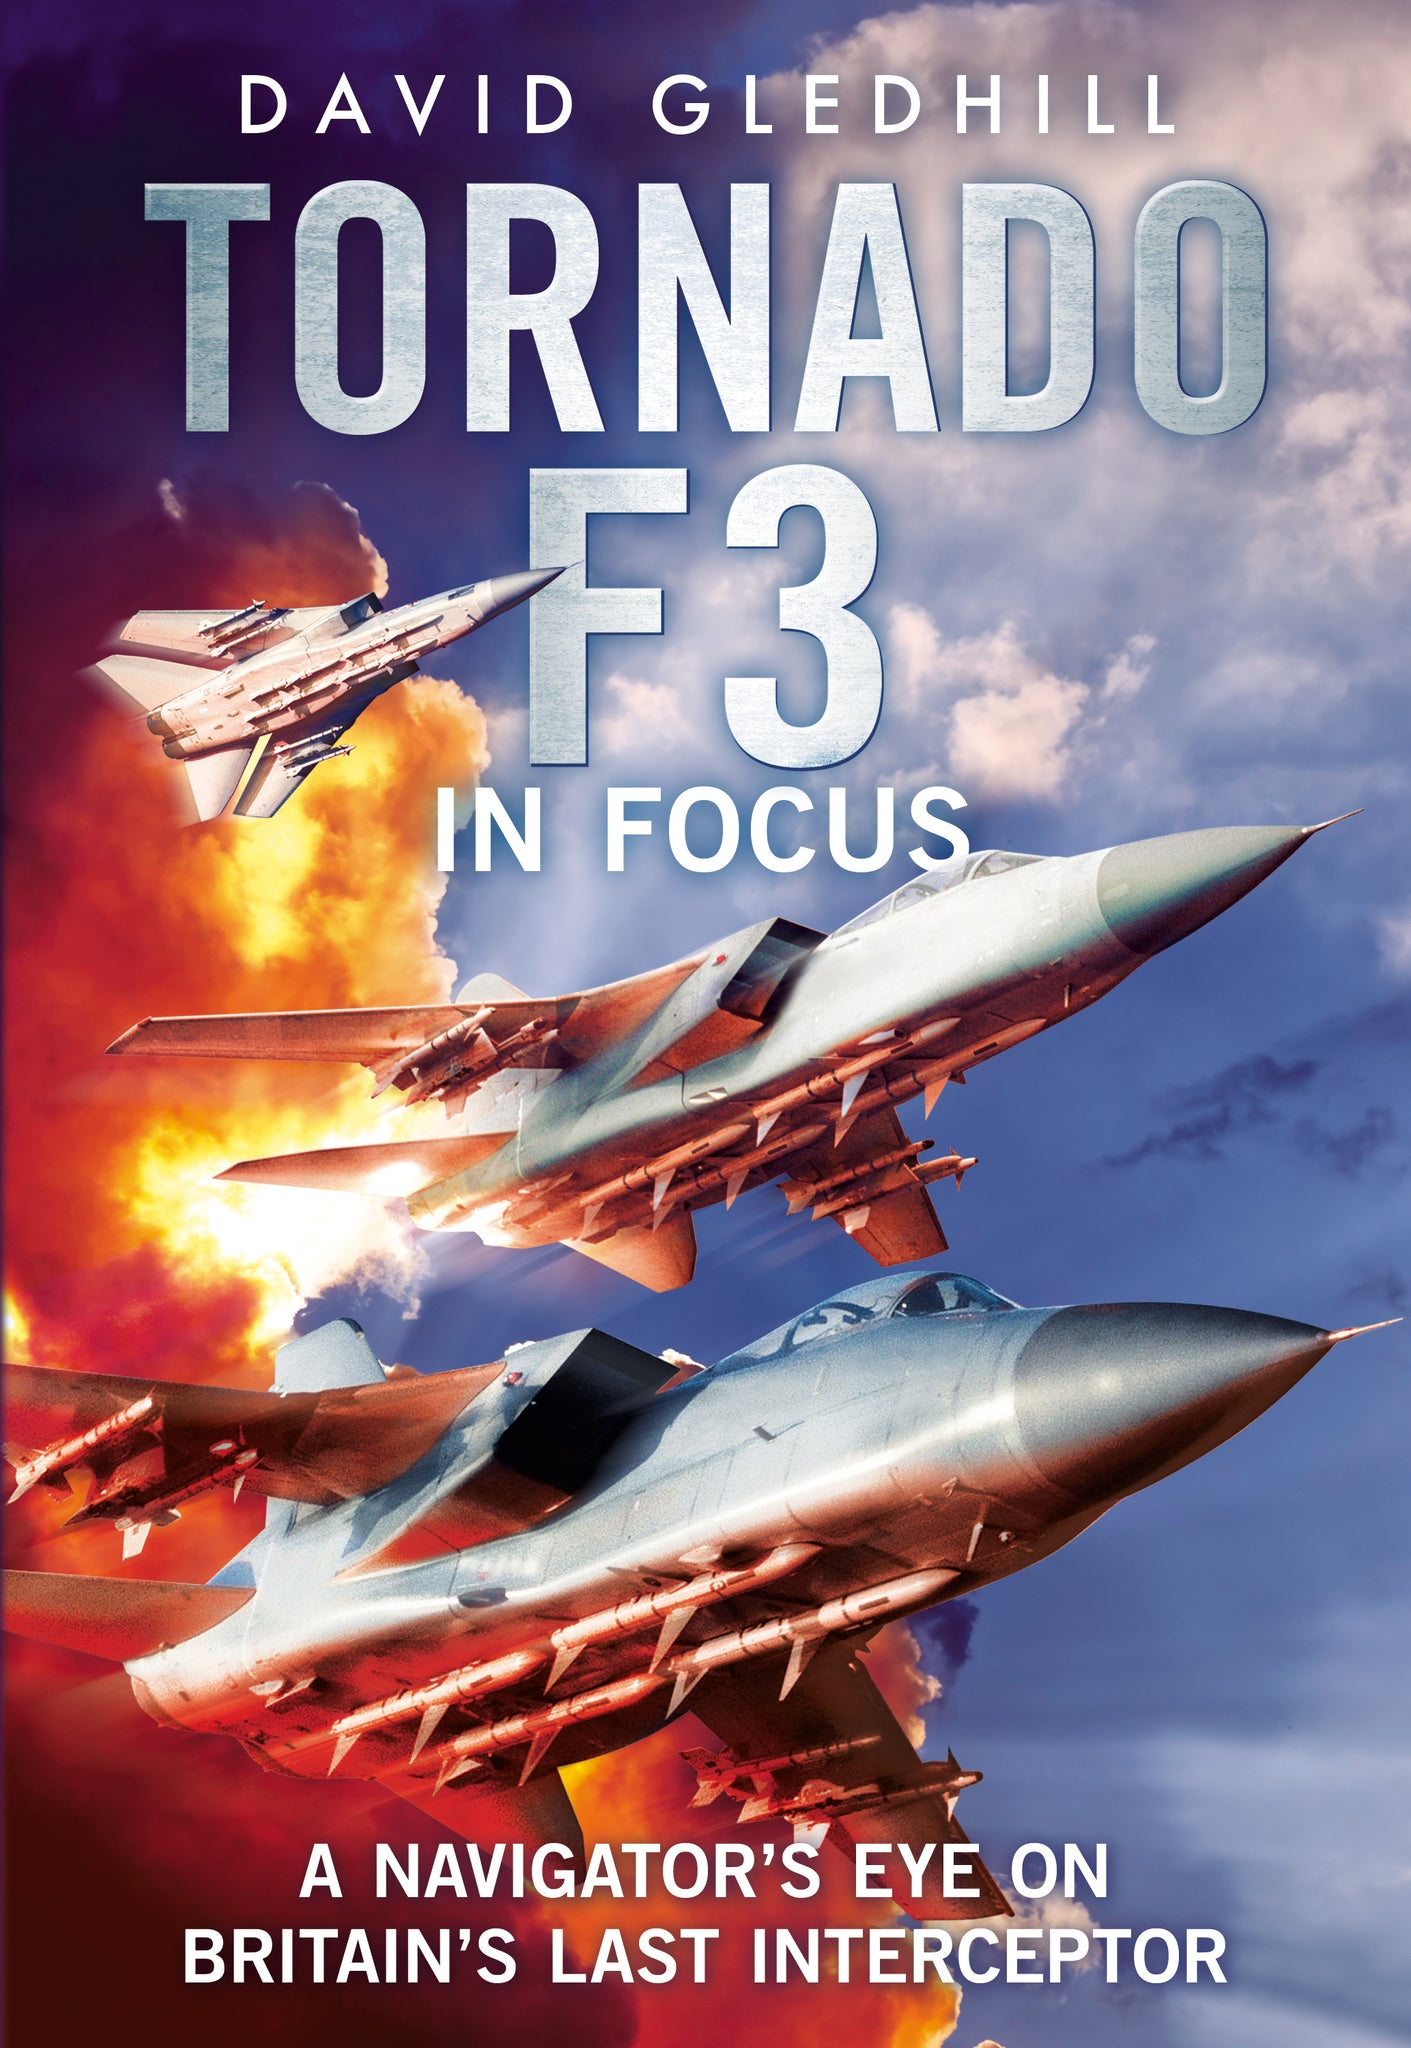 Tornado F3 in Focus: A Navigator's Eye on Britain's Last Interceptor